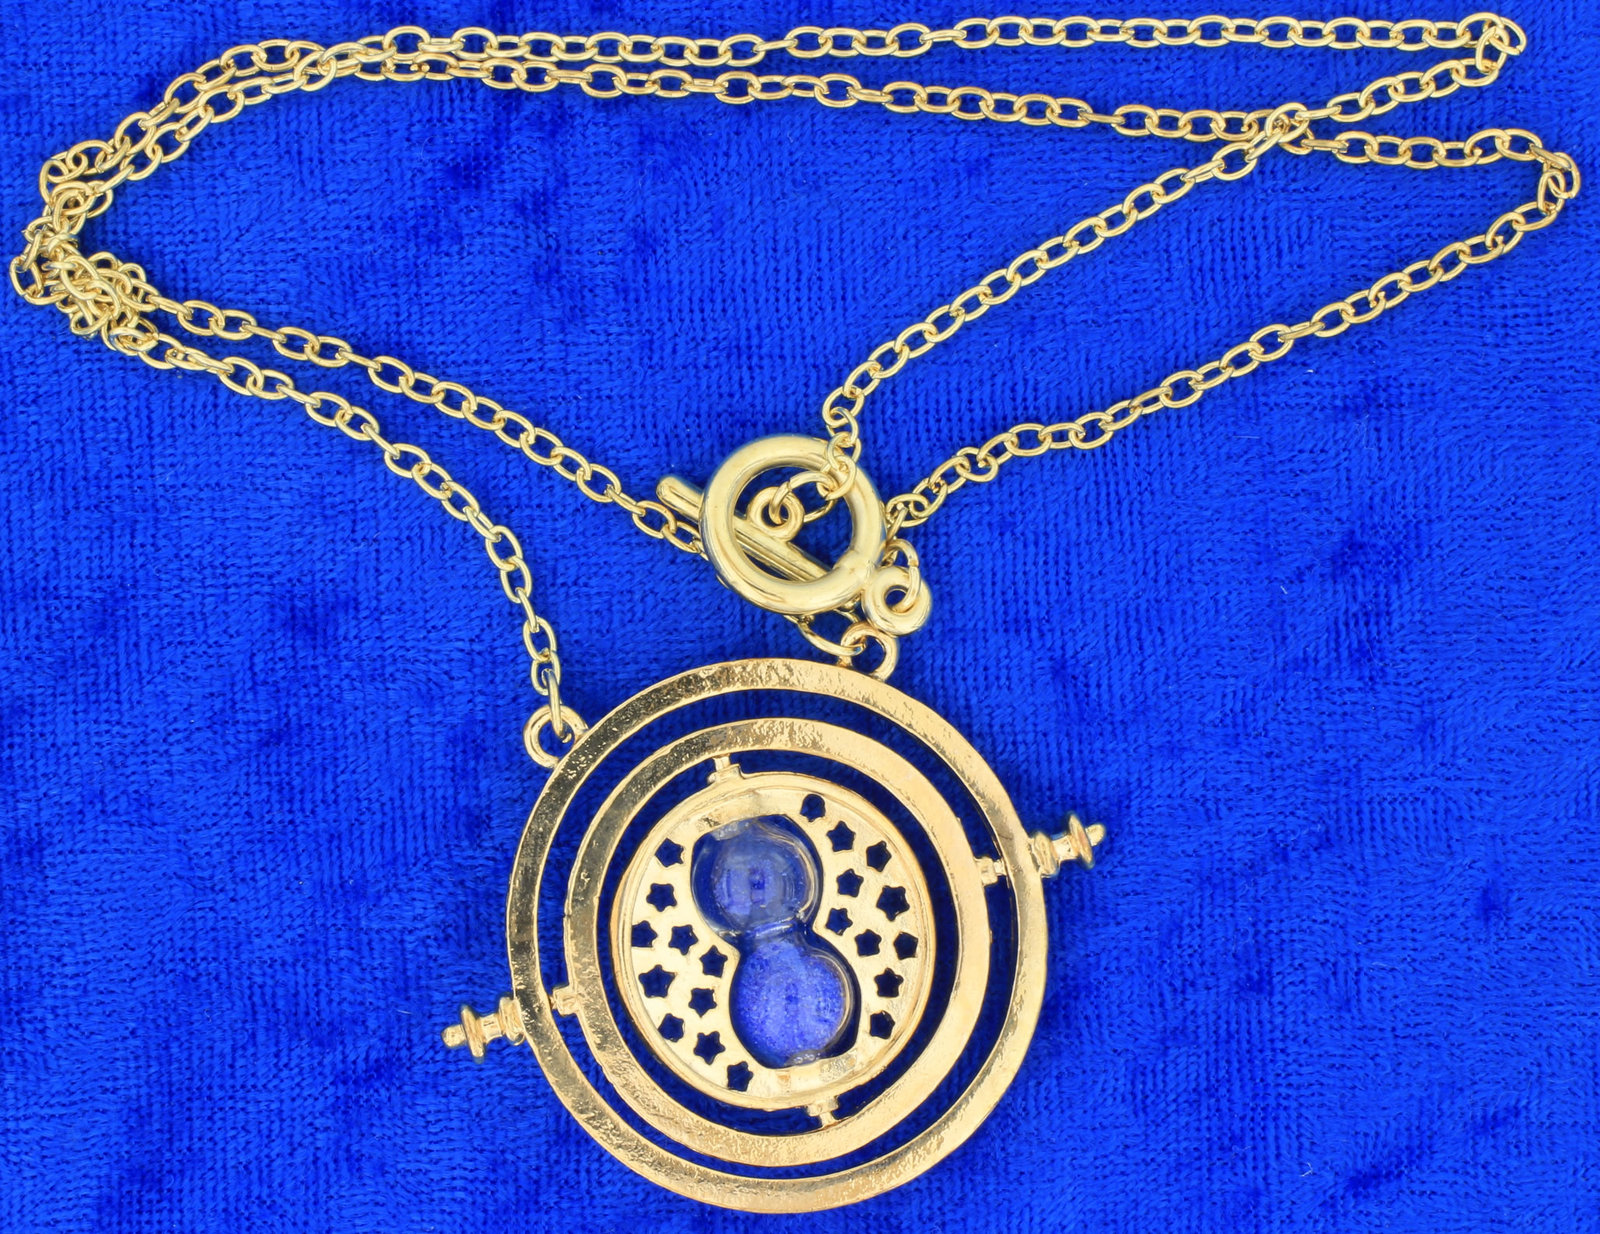 Time Turner Necklace Gold/Blue Hermione Granger's Chain Length Choice